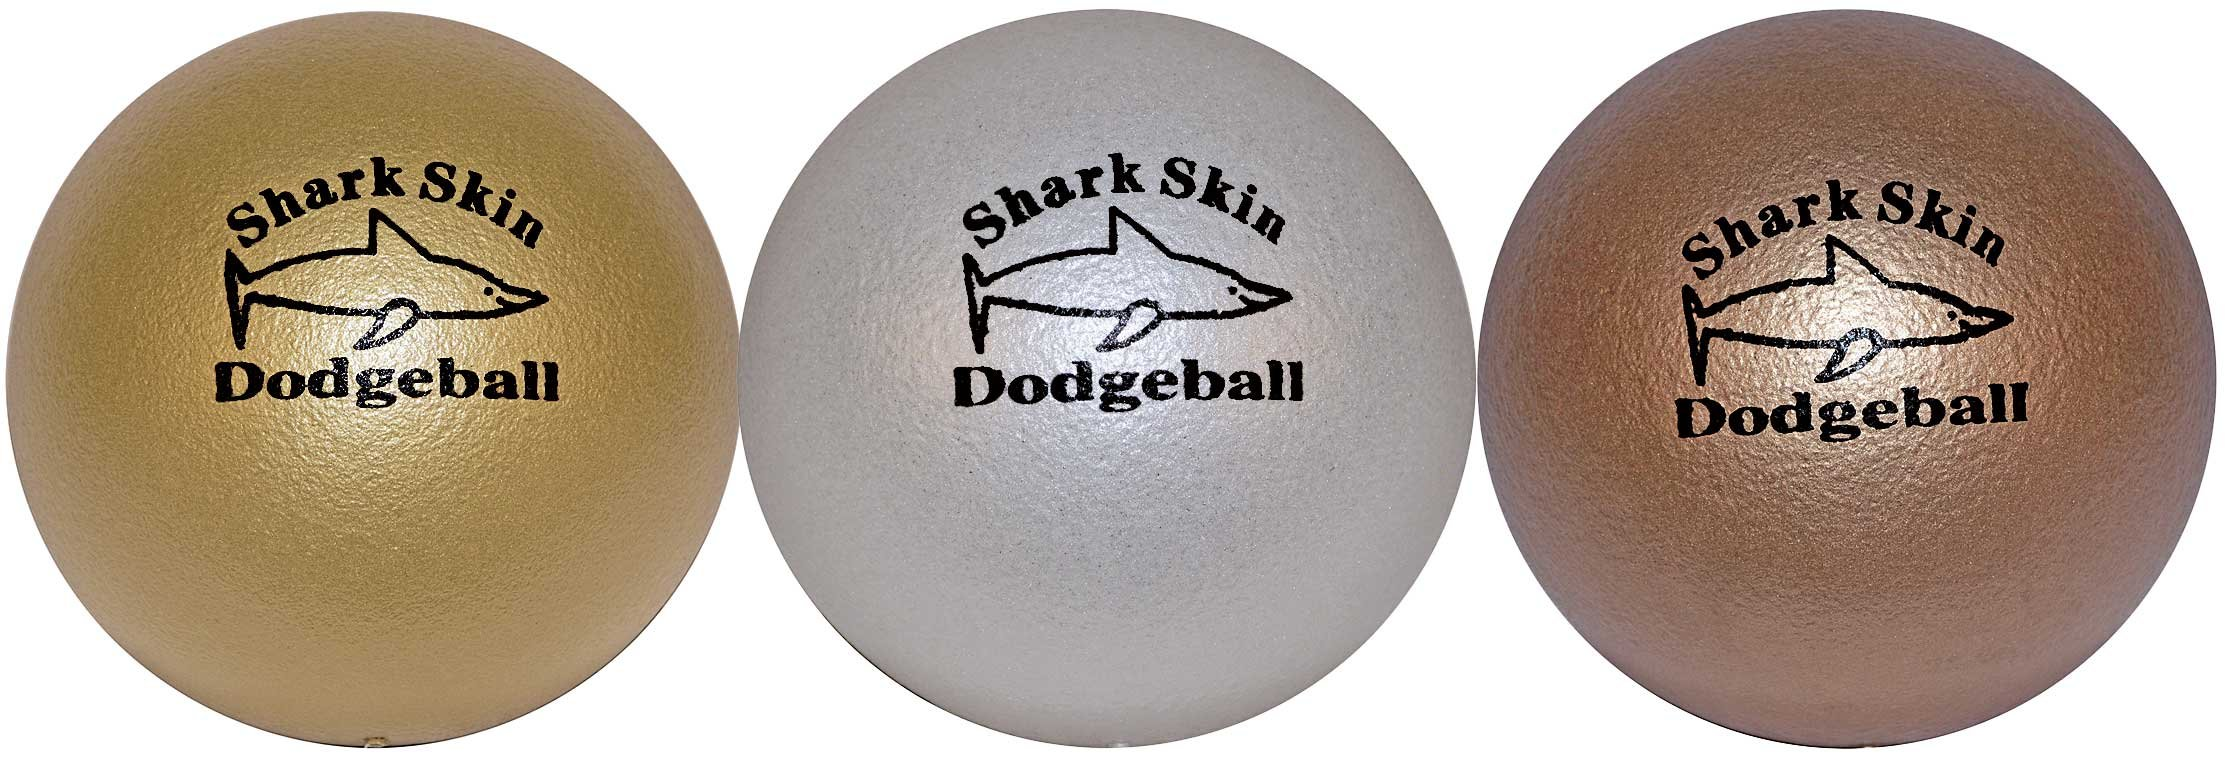 Great Lakes Sports Shark Skin Foam Dodgeballs (Set of 3), in Unique Metallic Colors by Great Lakes Sports